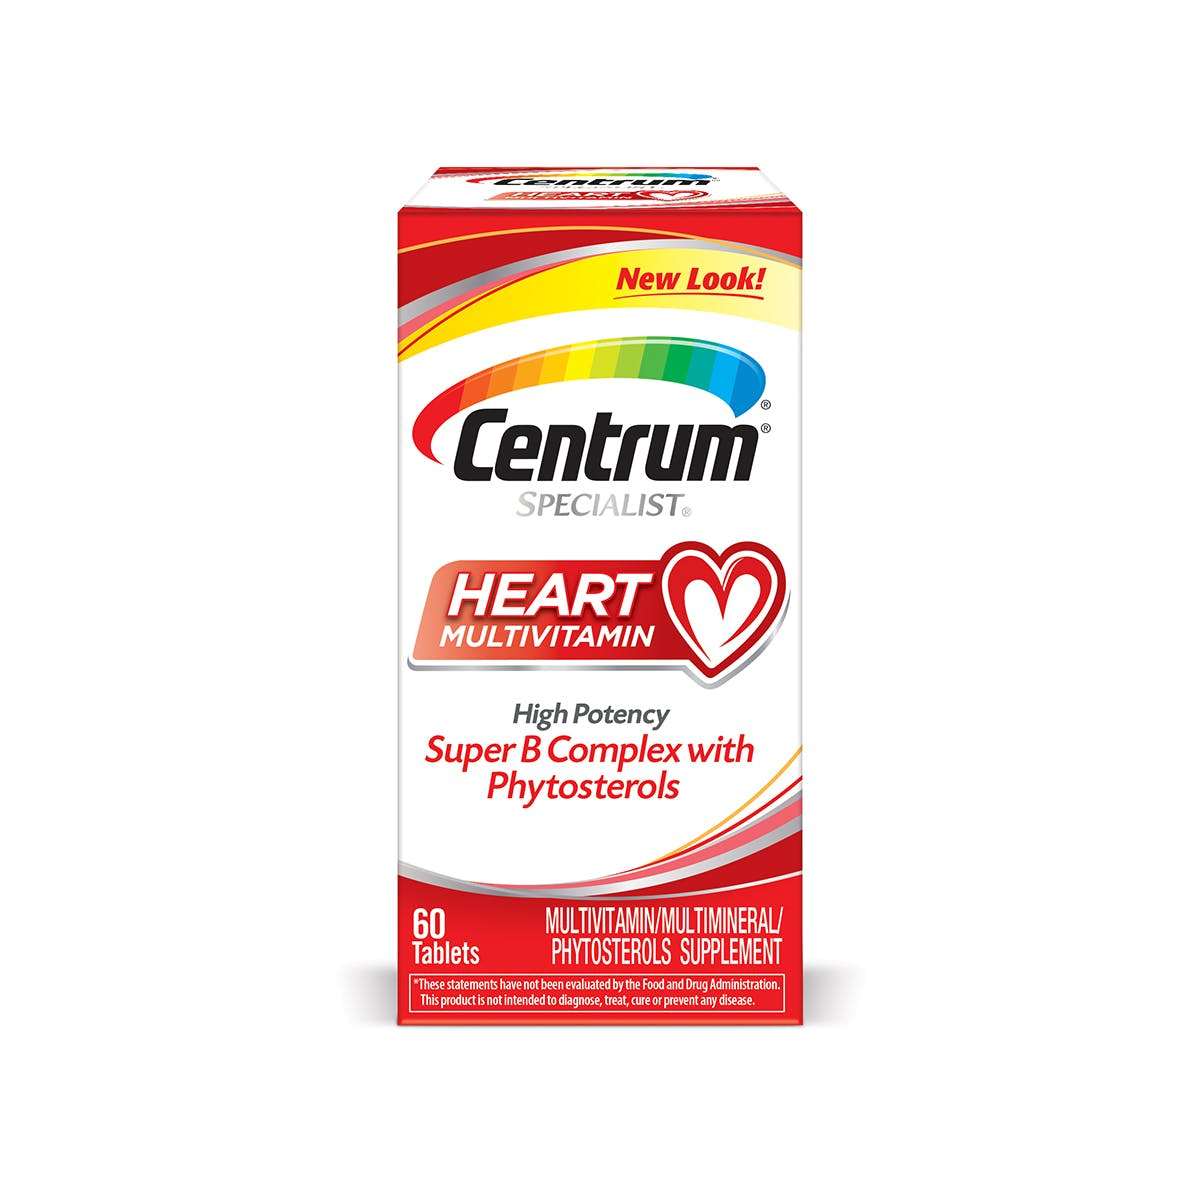 Box of centrum specialist heart multivitamins